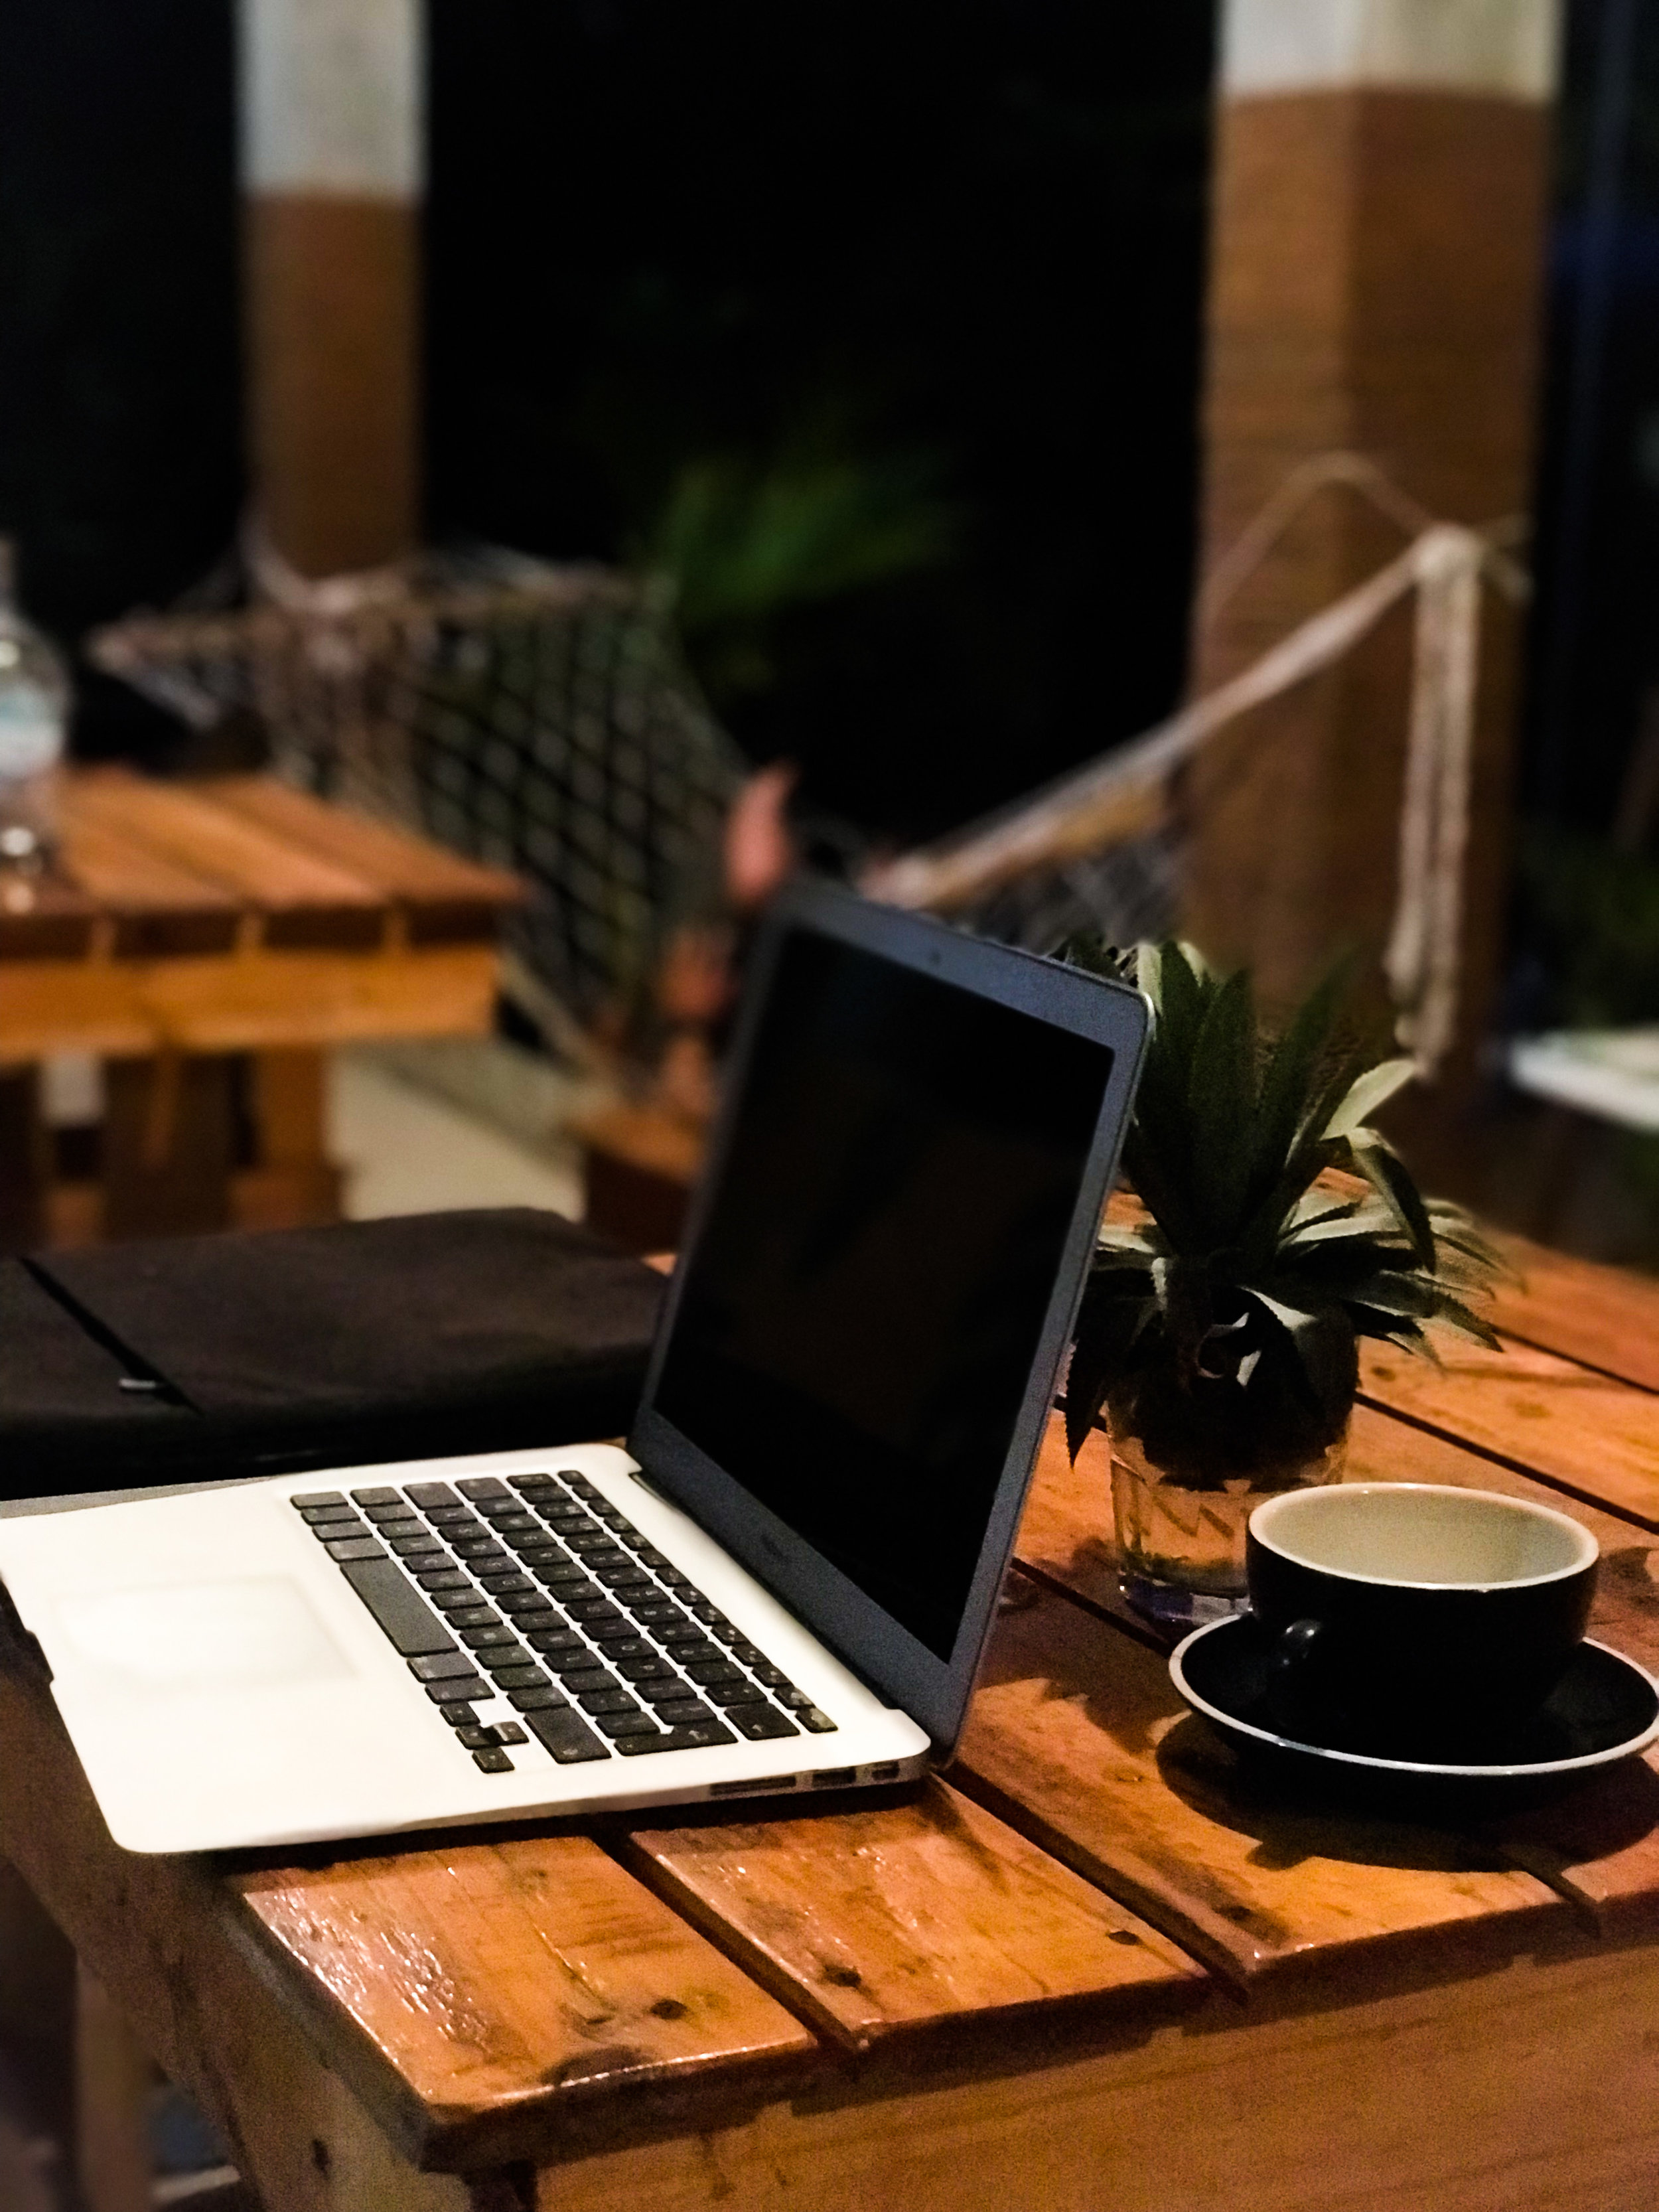 beachside coworking cafe and gym